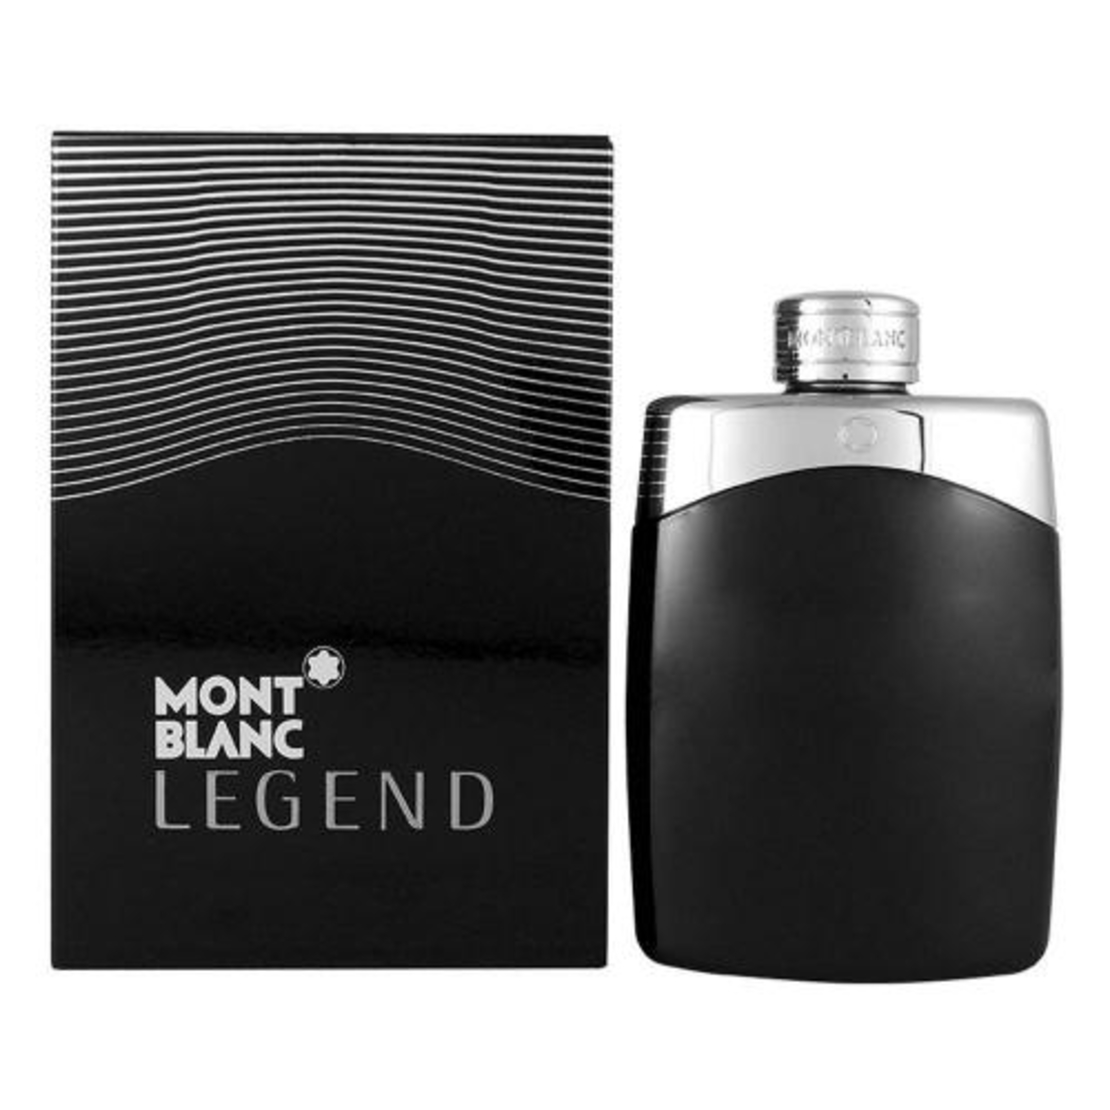 בושם לגבר מונט בלאם לג'נד Mont Blanc (M) Legend EDT 200 ML